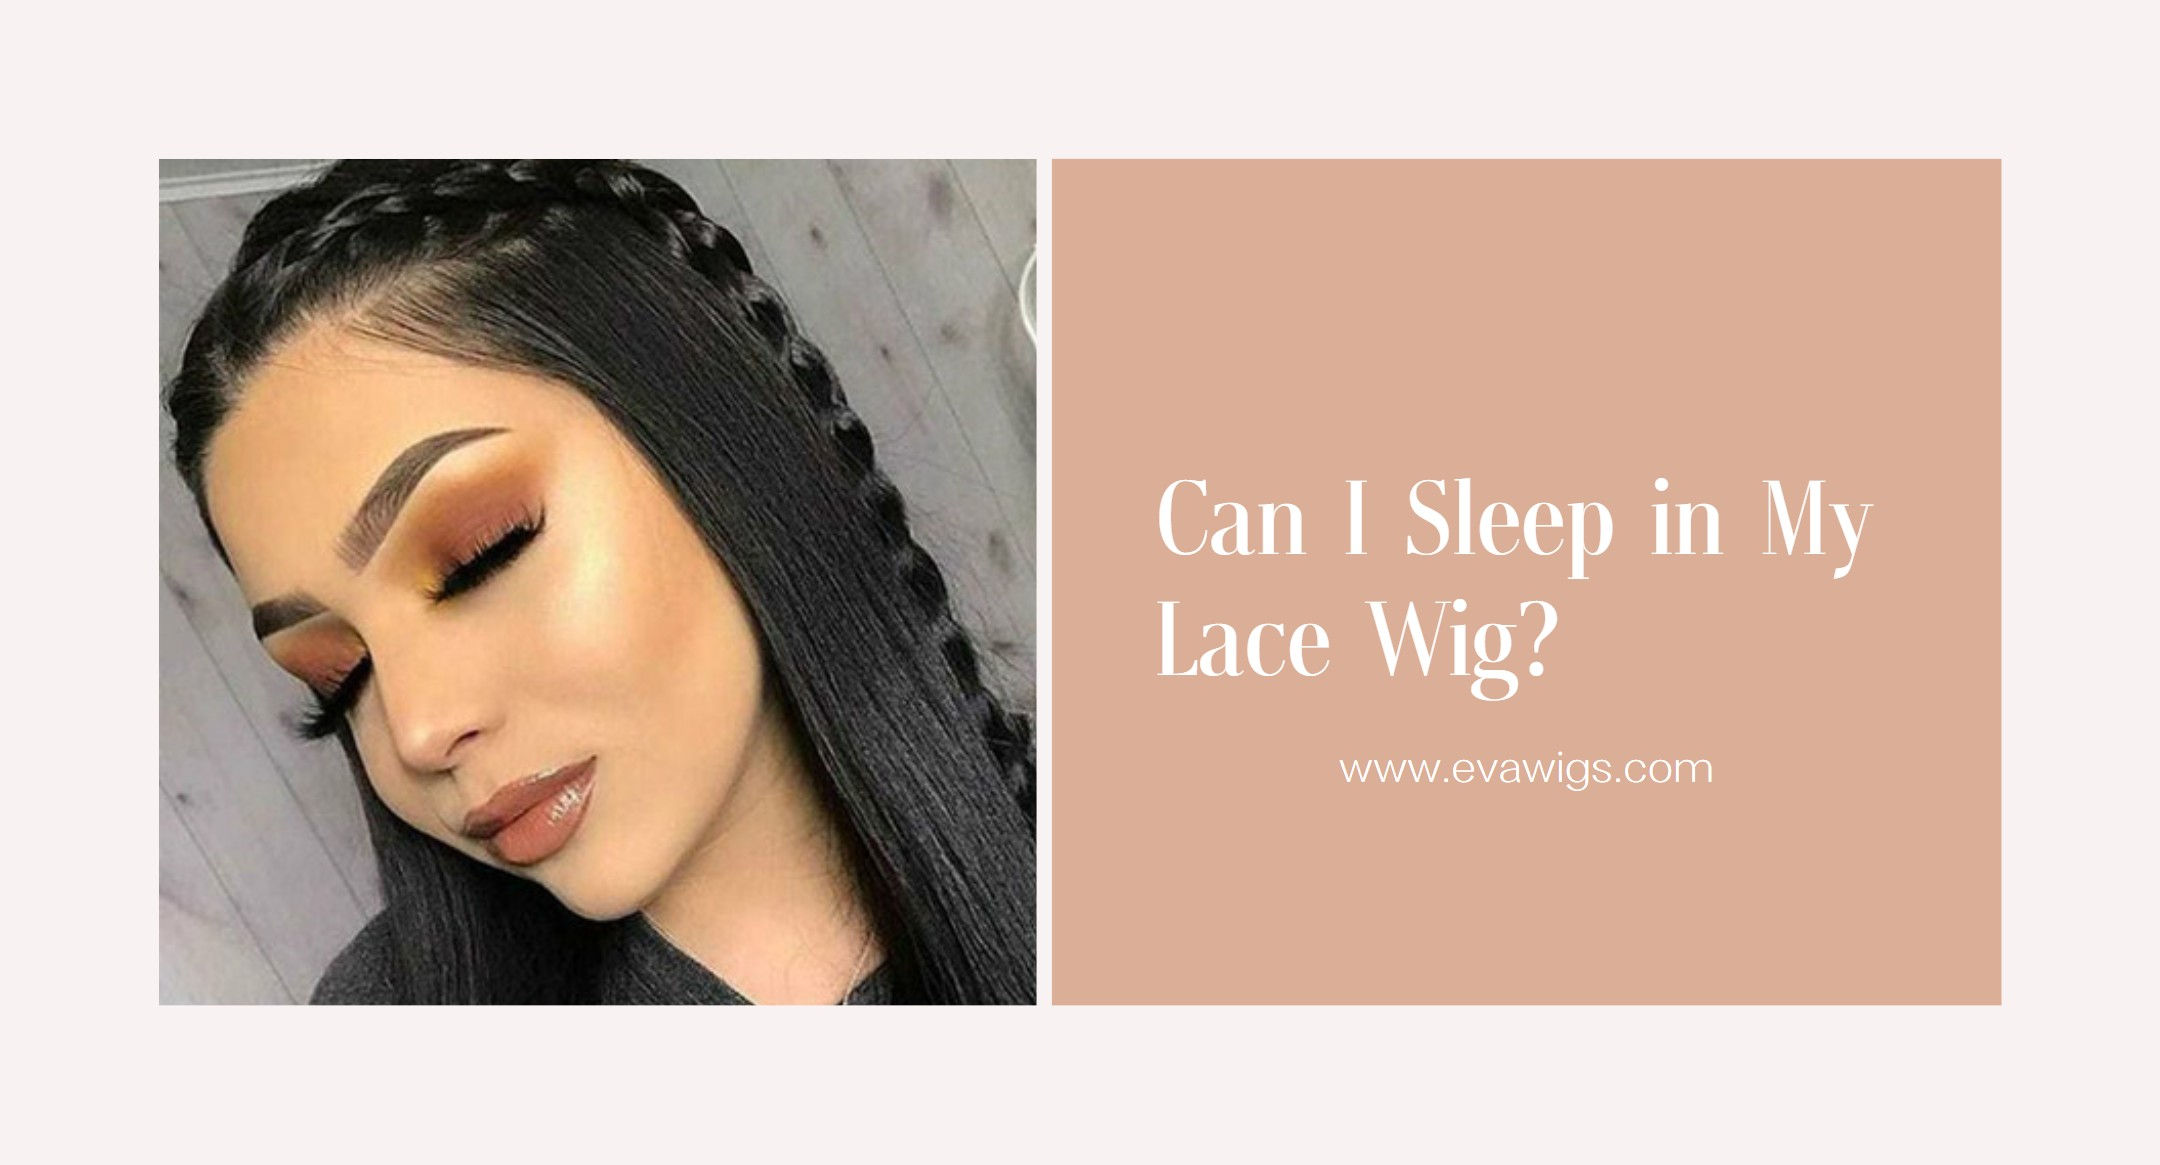 How Can I Sleep in My Lace Wig?